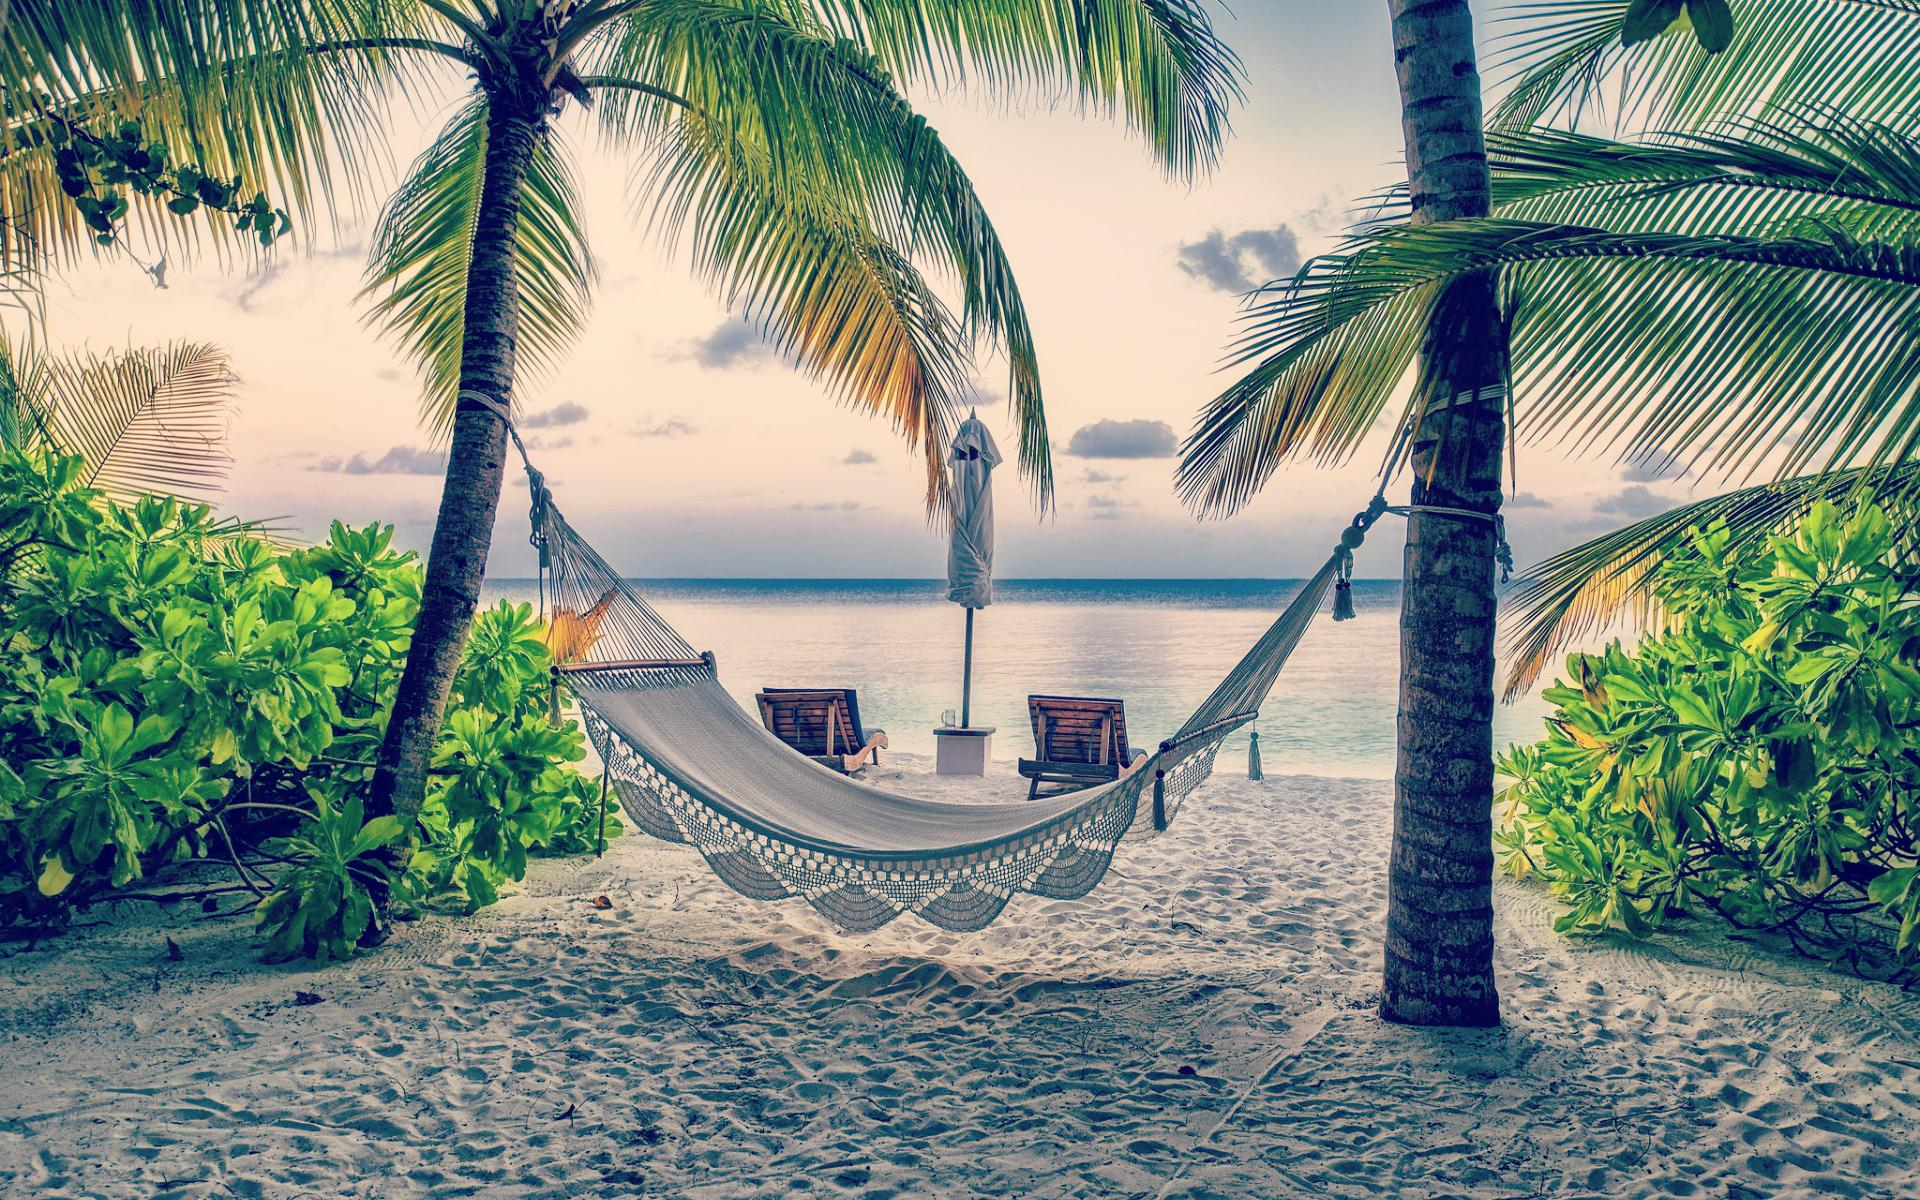 romantic beach hammock wallpaper 49216